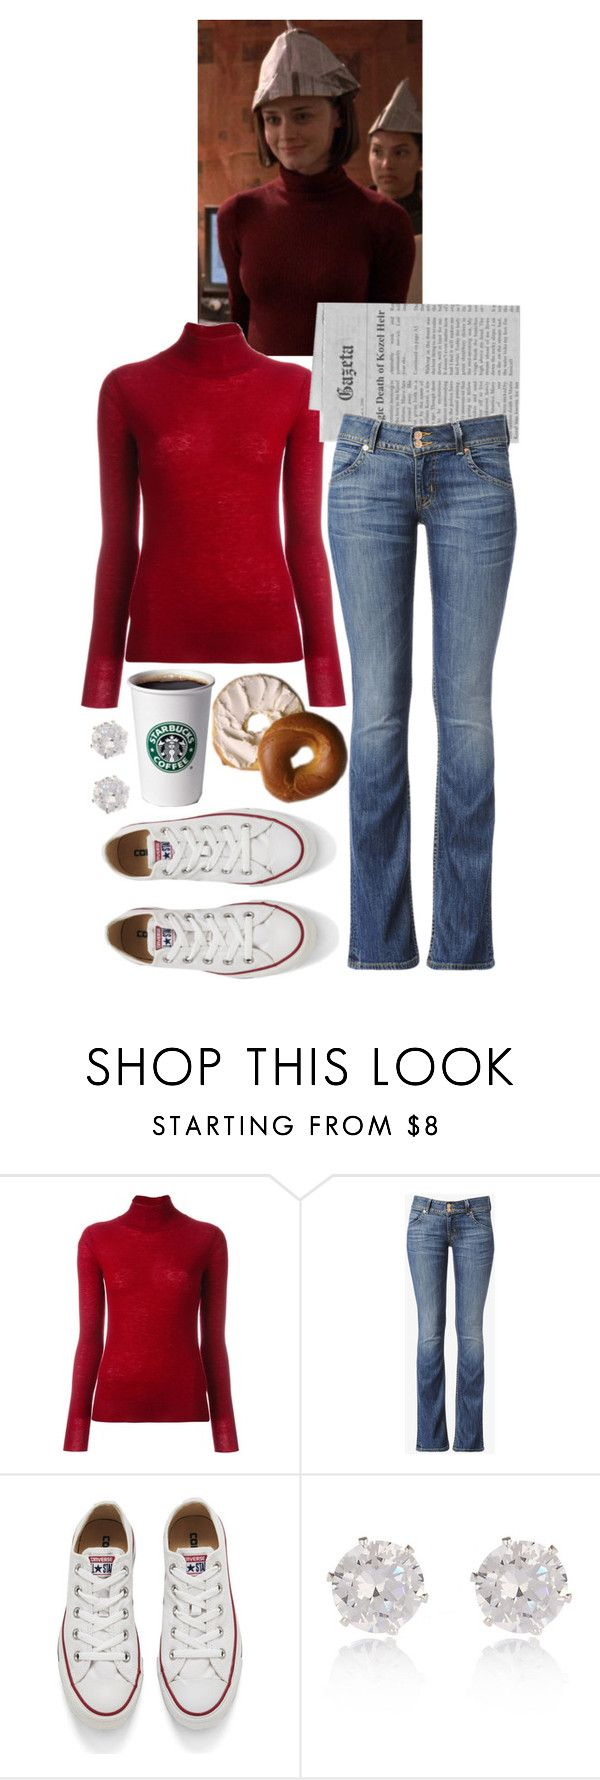 """Rory Gilmore Style"" by sewing-girl ❤ liked on Polyvore featuring Joseph, Hudson Jeans and Converse"